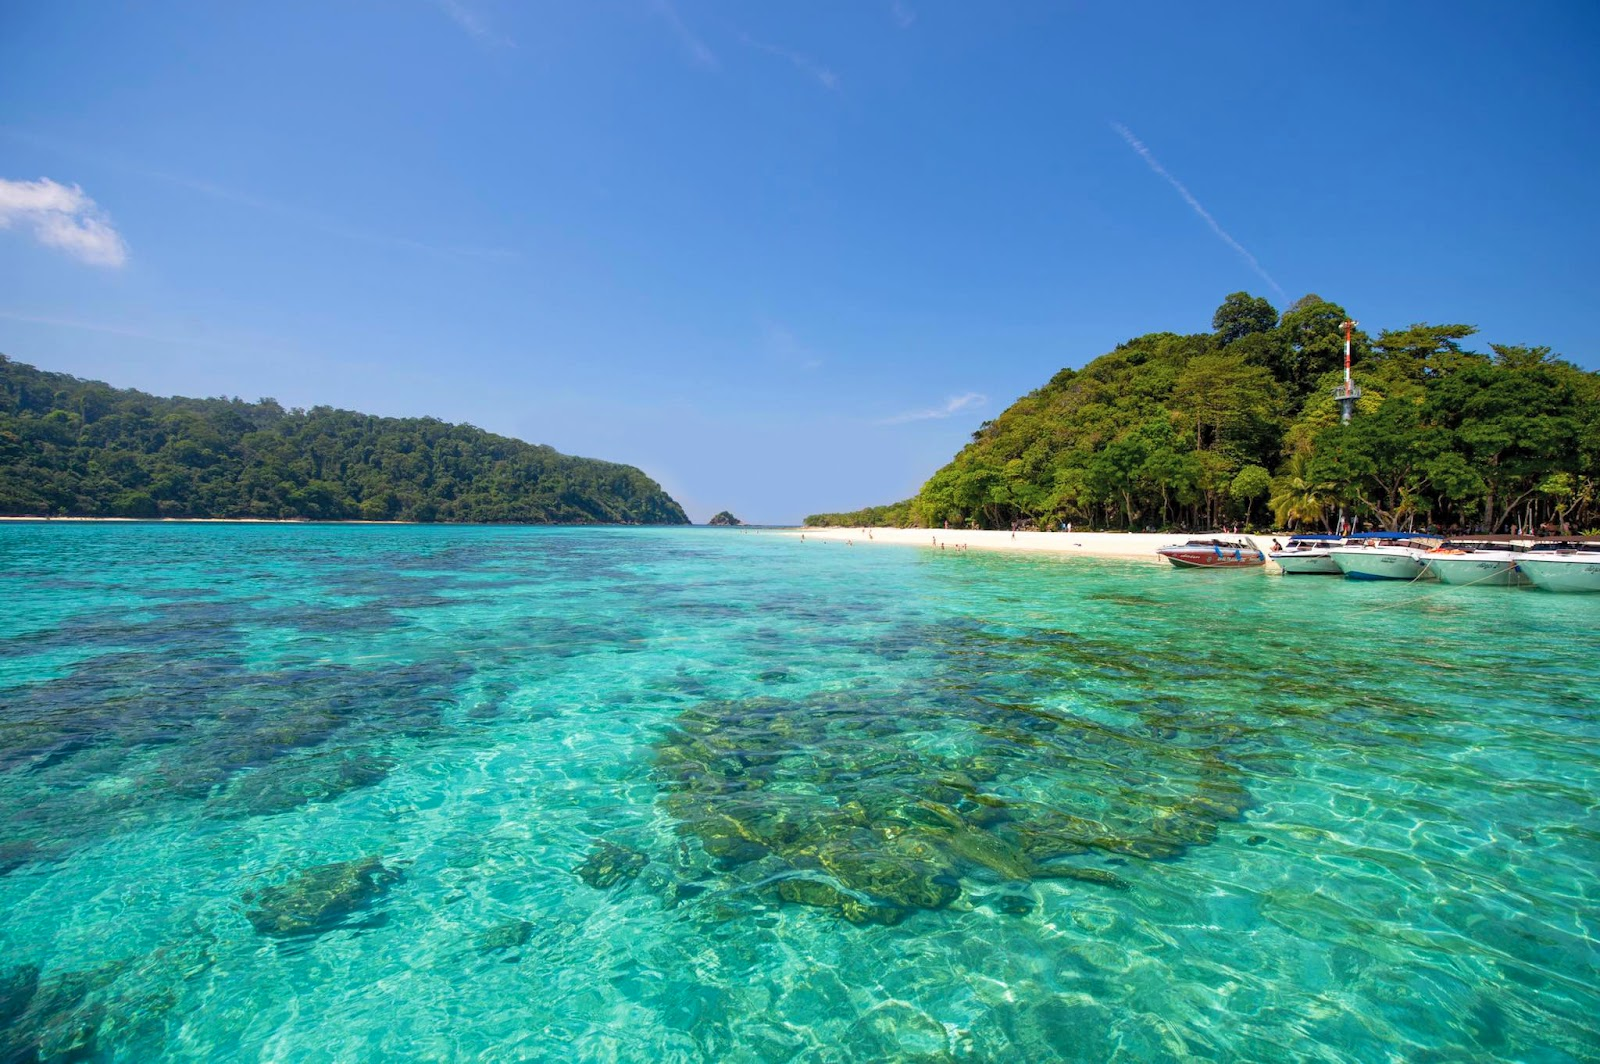 Snorkel Tour to Koh Rok and Koh Ha by Speed Boat from Krabi